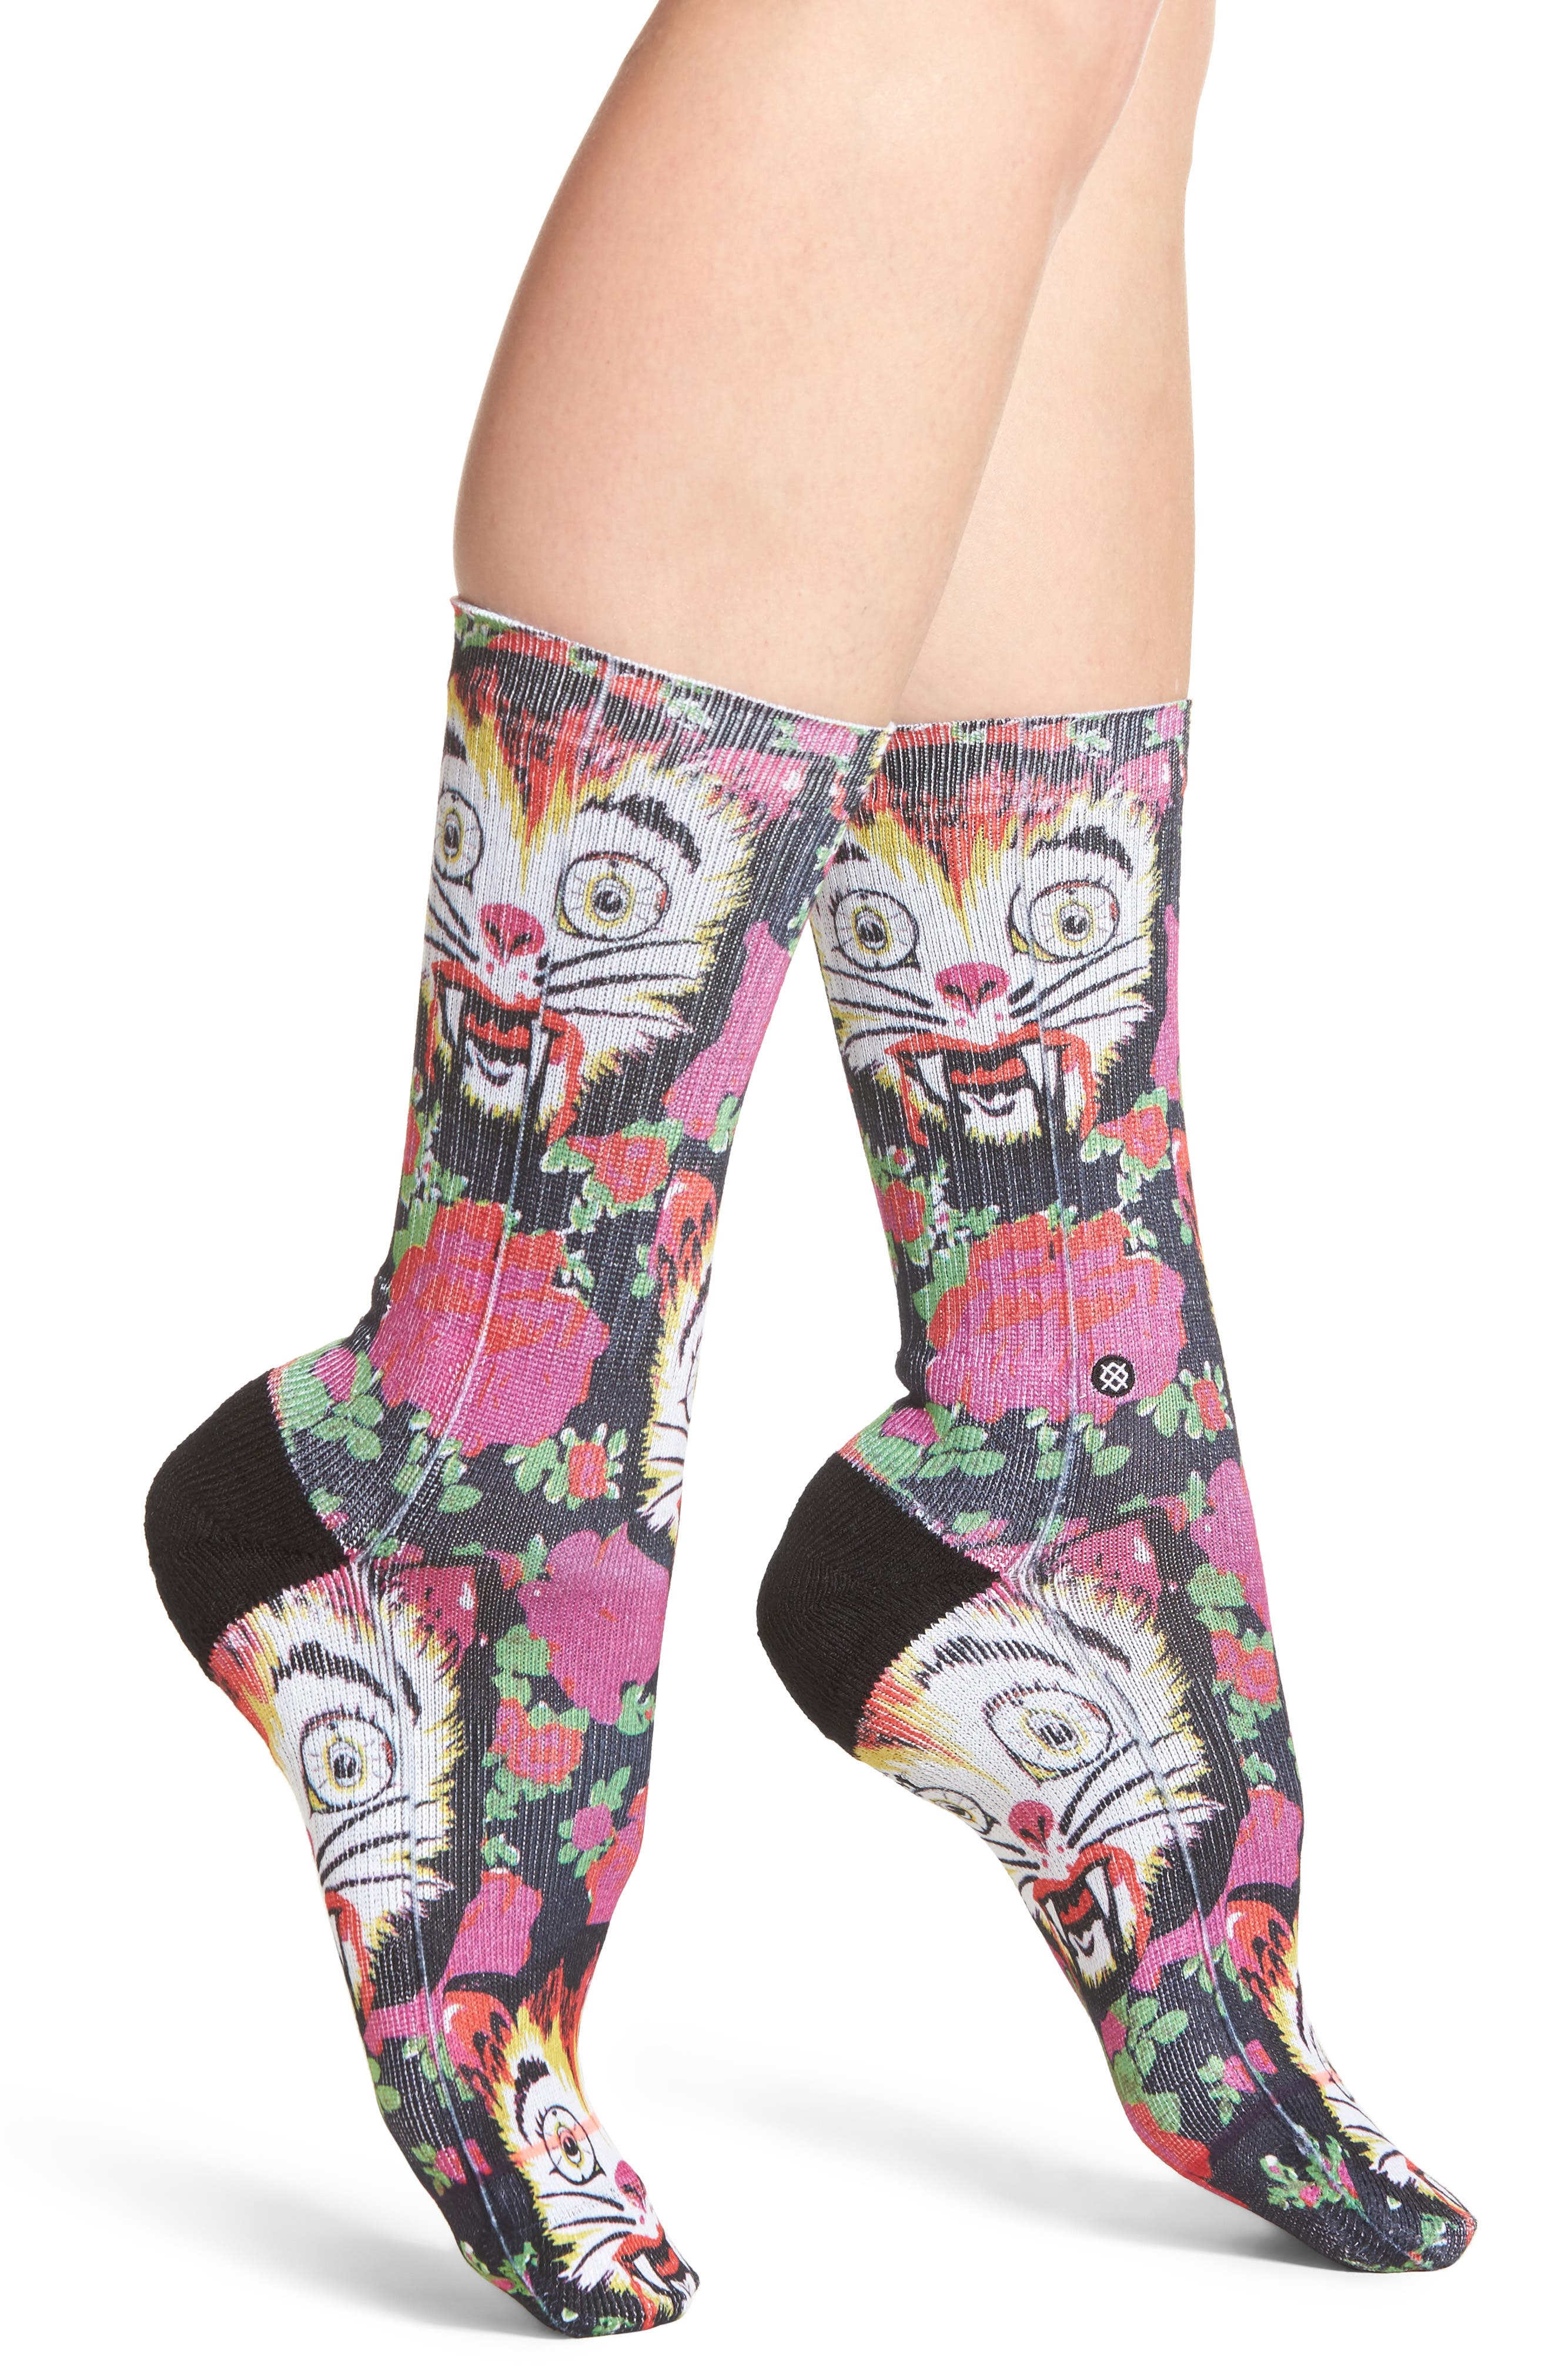 Main Image - Stance x Libertine Cat Man Do Socks